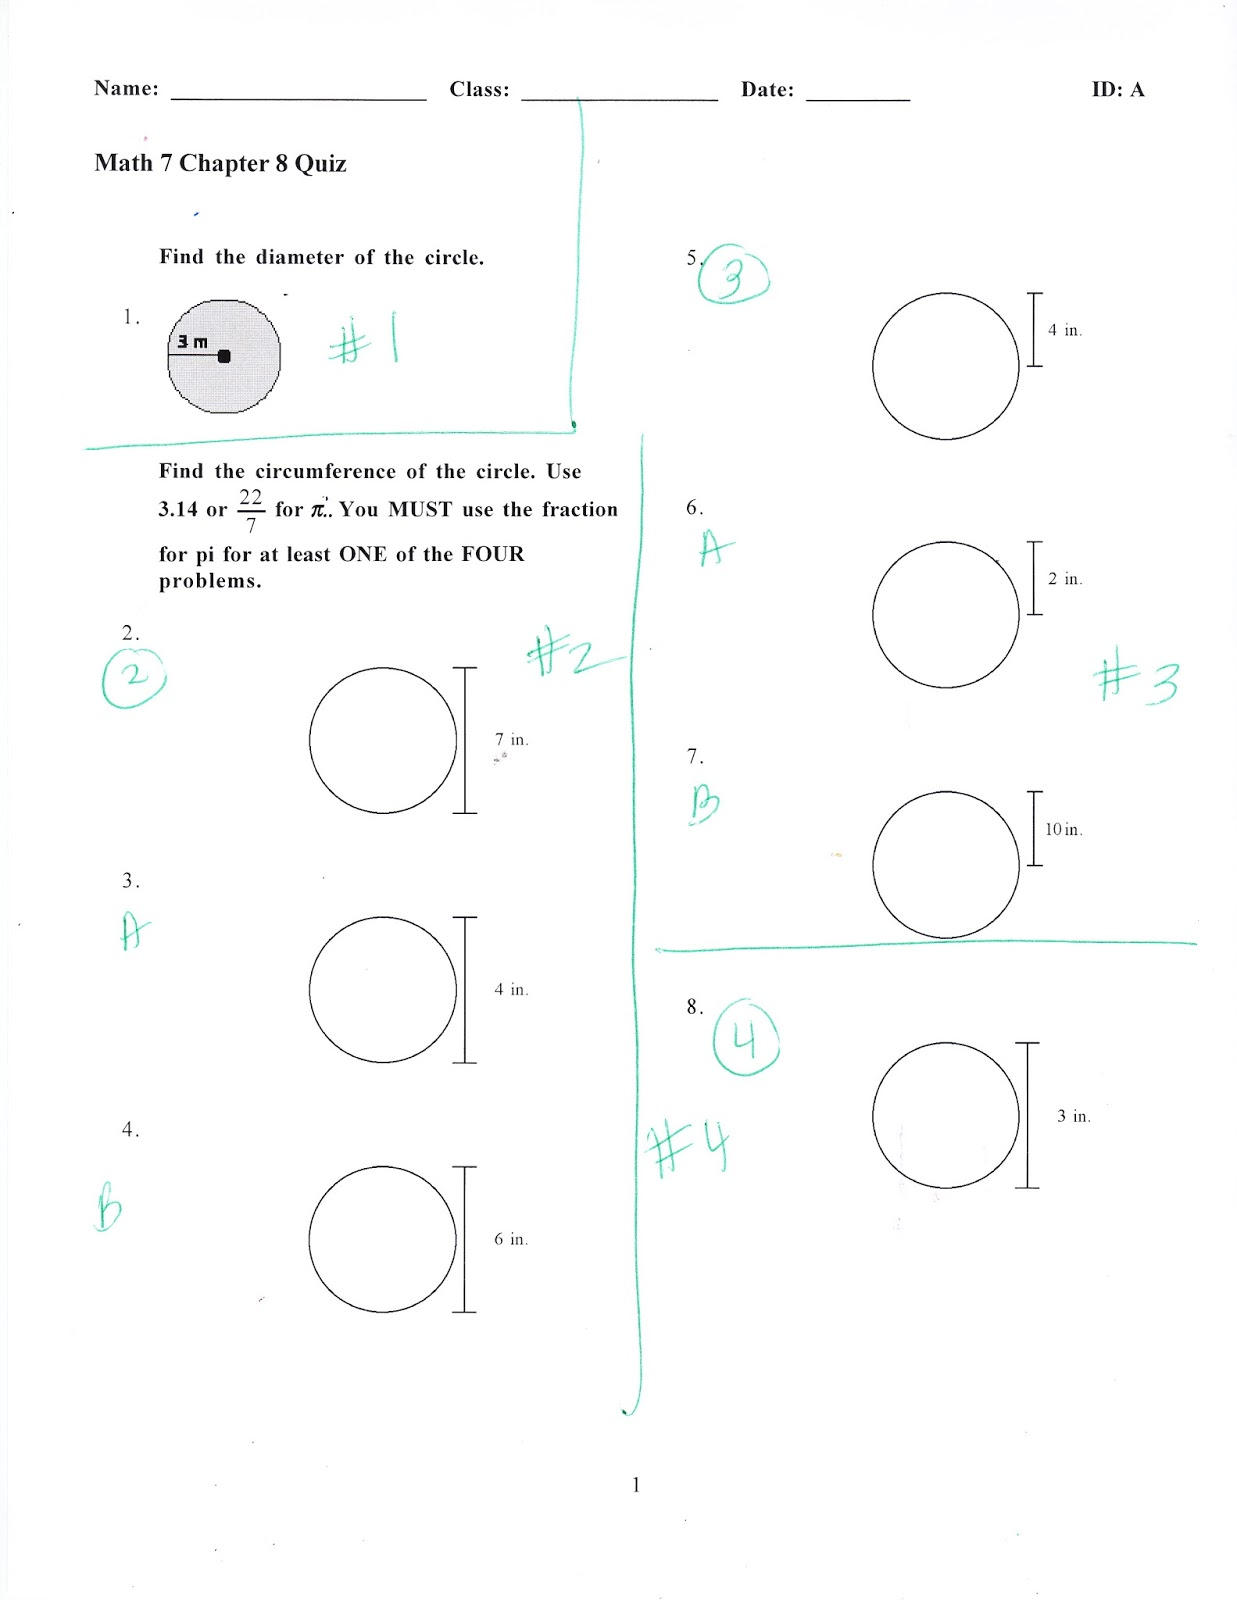 Ms. Jean's Classroom Blog: Math Chapter 8 Quiz Extras